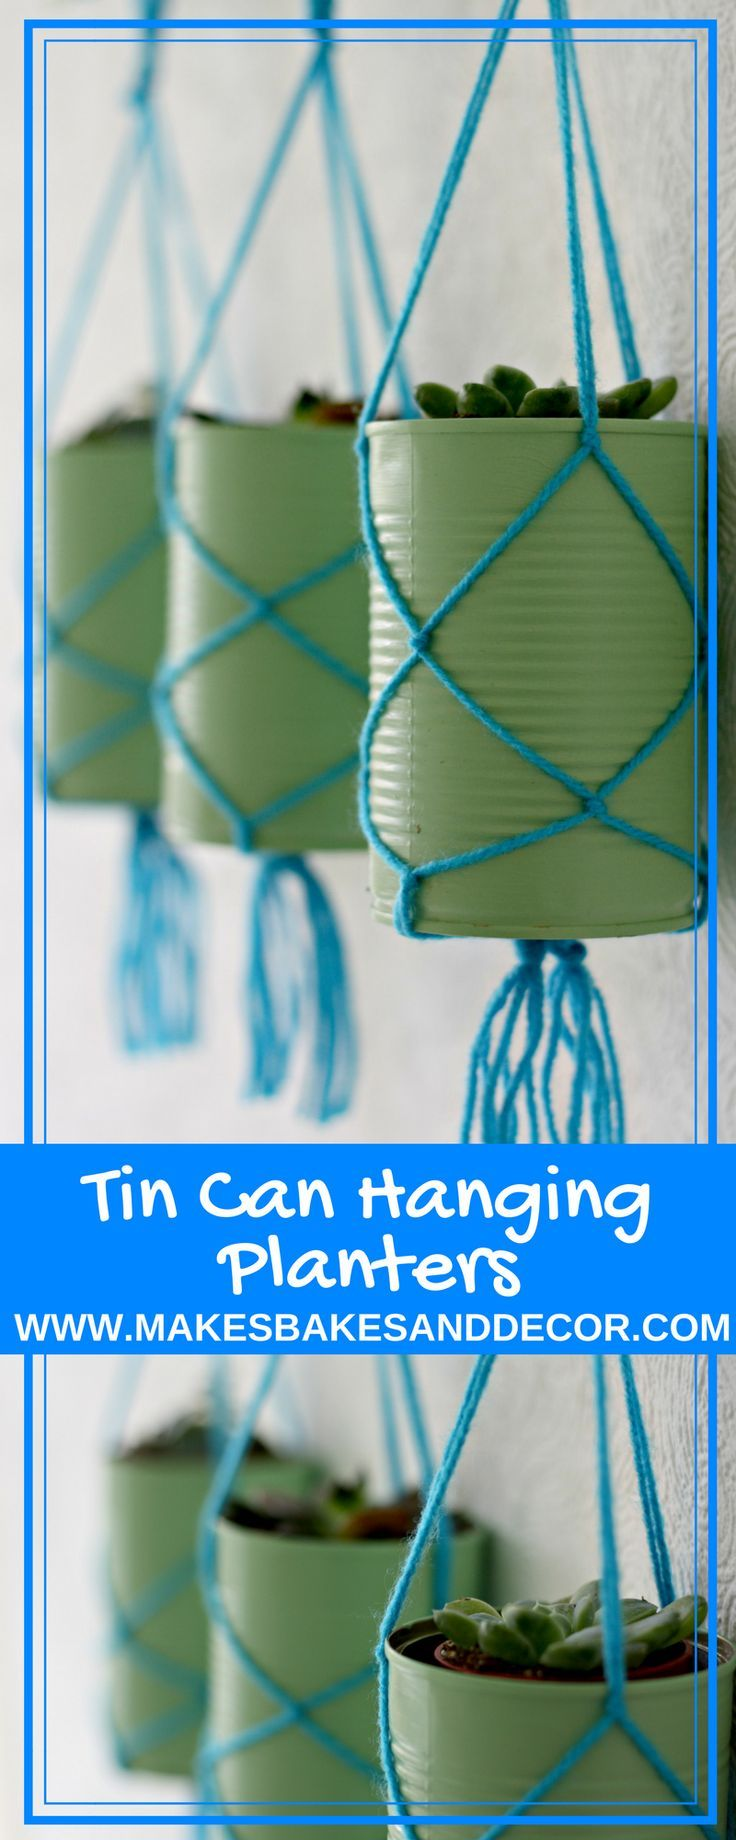 Tin Can Hanging Planters #recycledcrafts